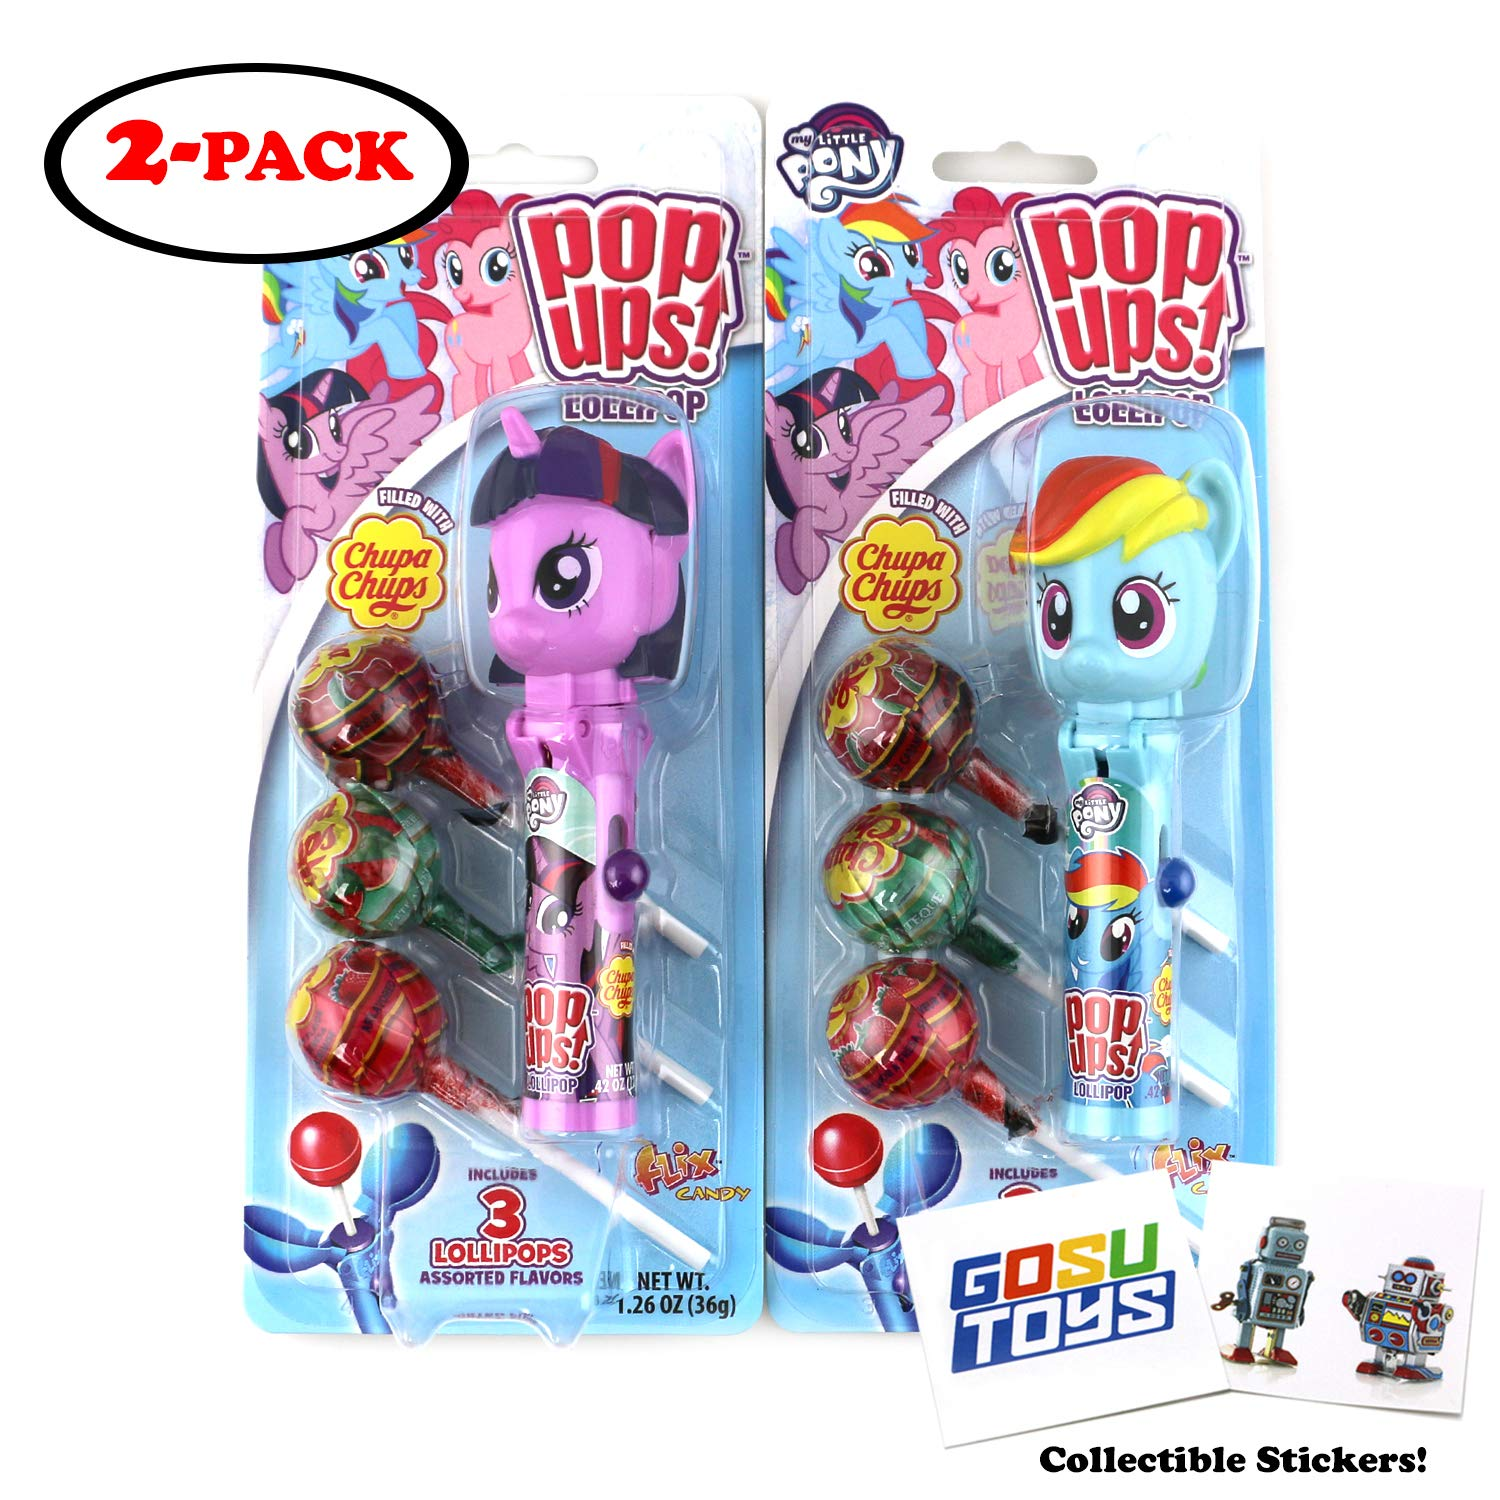 My Little Pony Pop Ups Lollipop Case Holder (Twilight Sparkle, Pinky Pie, or Rainbow Dash) with Chupa Chups Lollipops and 2 Gosu Toys Stickers (2 Pack Assorted Characters)